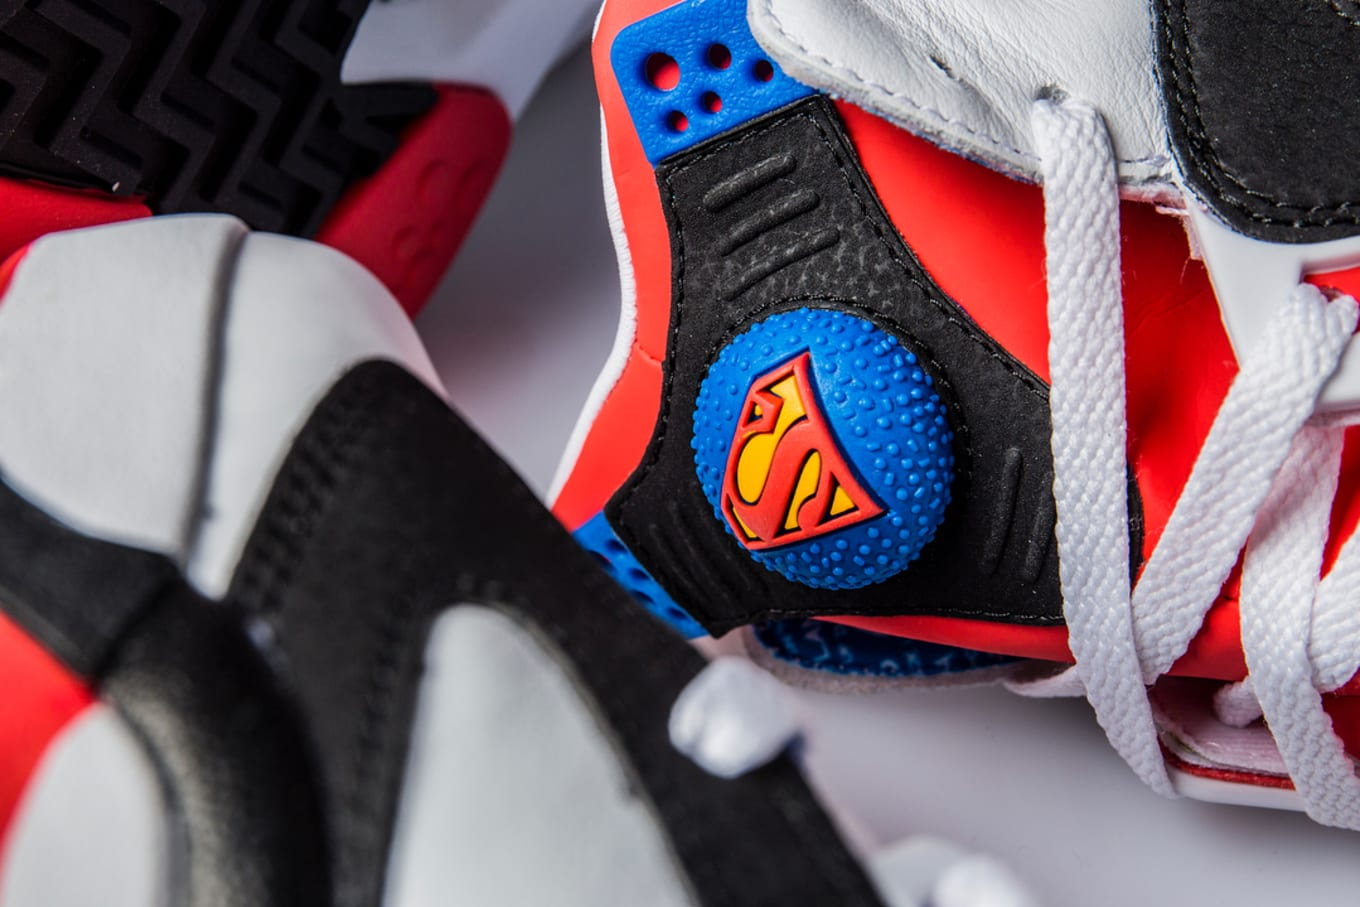 216aeb3f21e97f Shaq and Reebok Are Releasing  Superman  Sneakers. Celebrating Shaq s  All-Star debut 25 years ago.